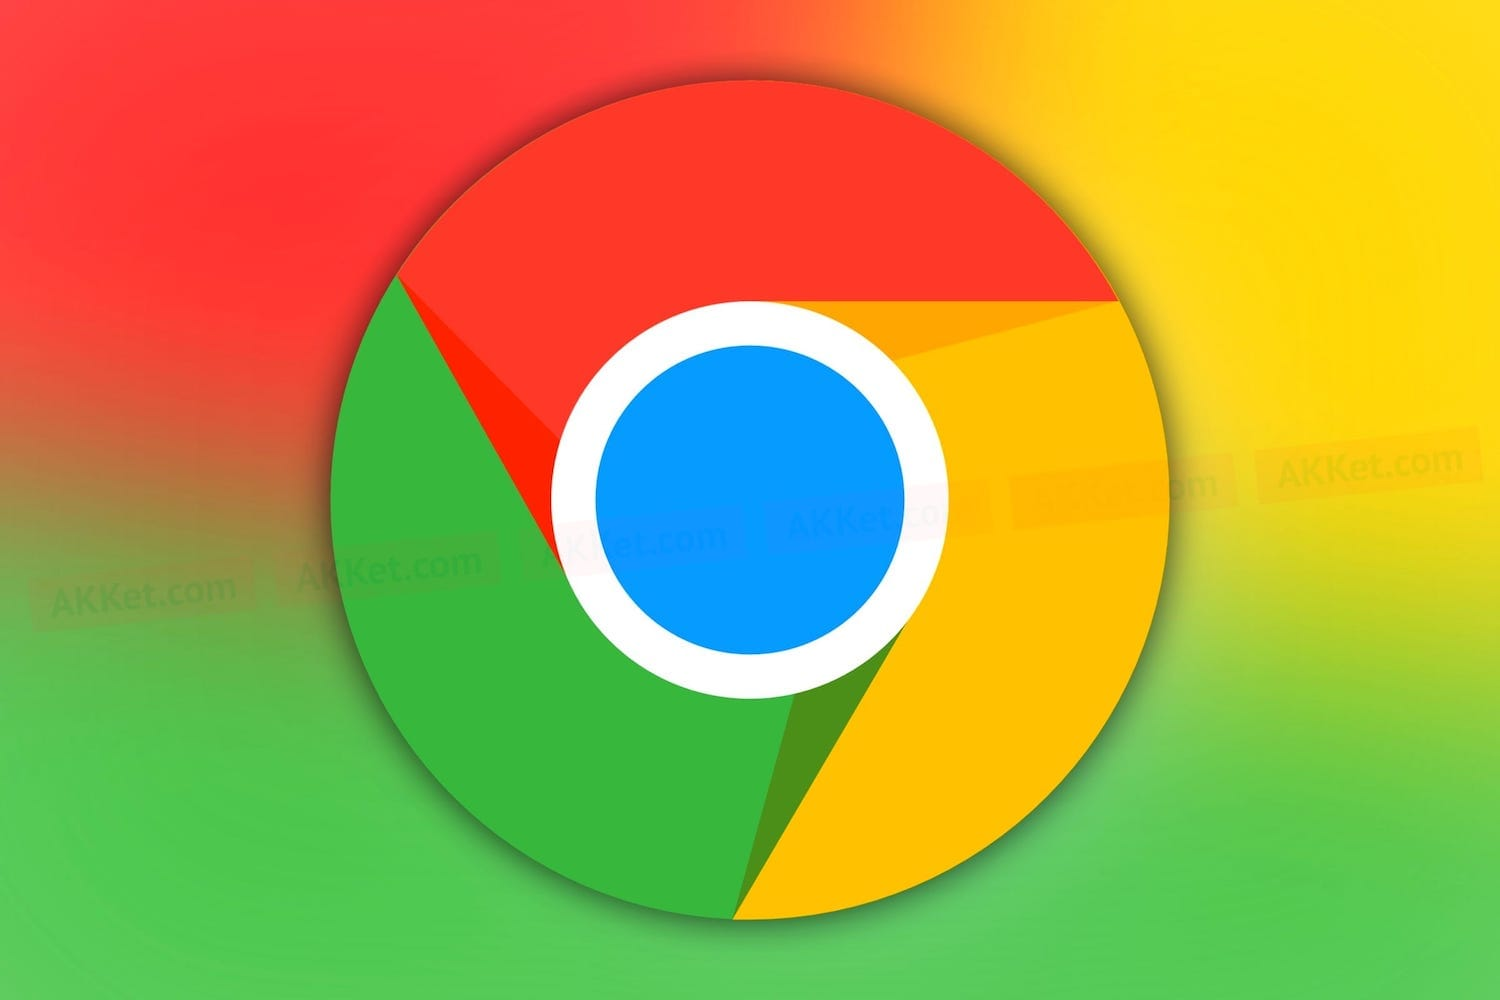 Google-Chrome-Material-Design-New-5.jpg